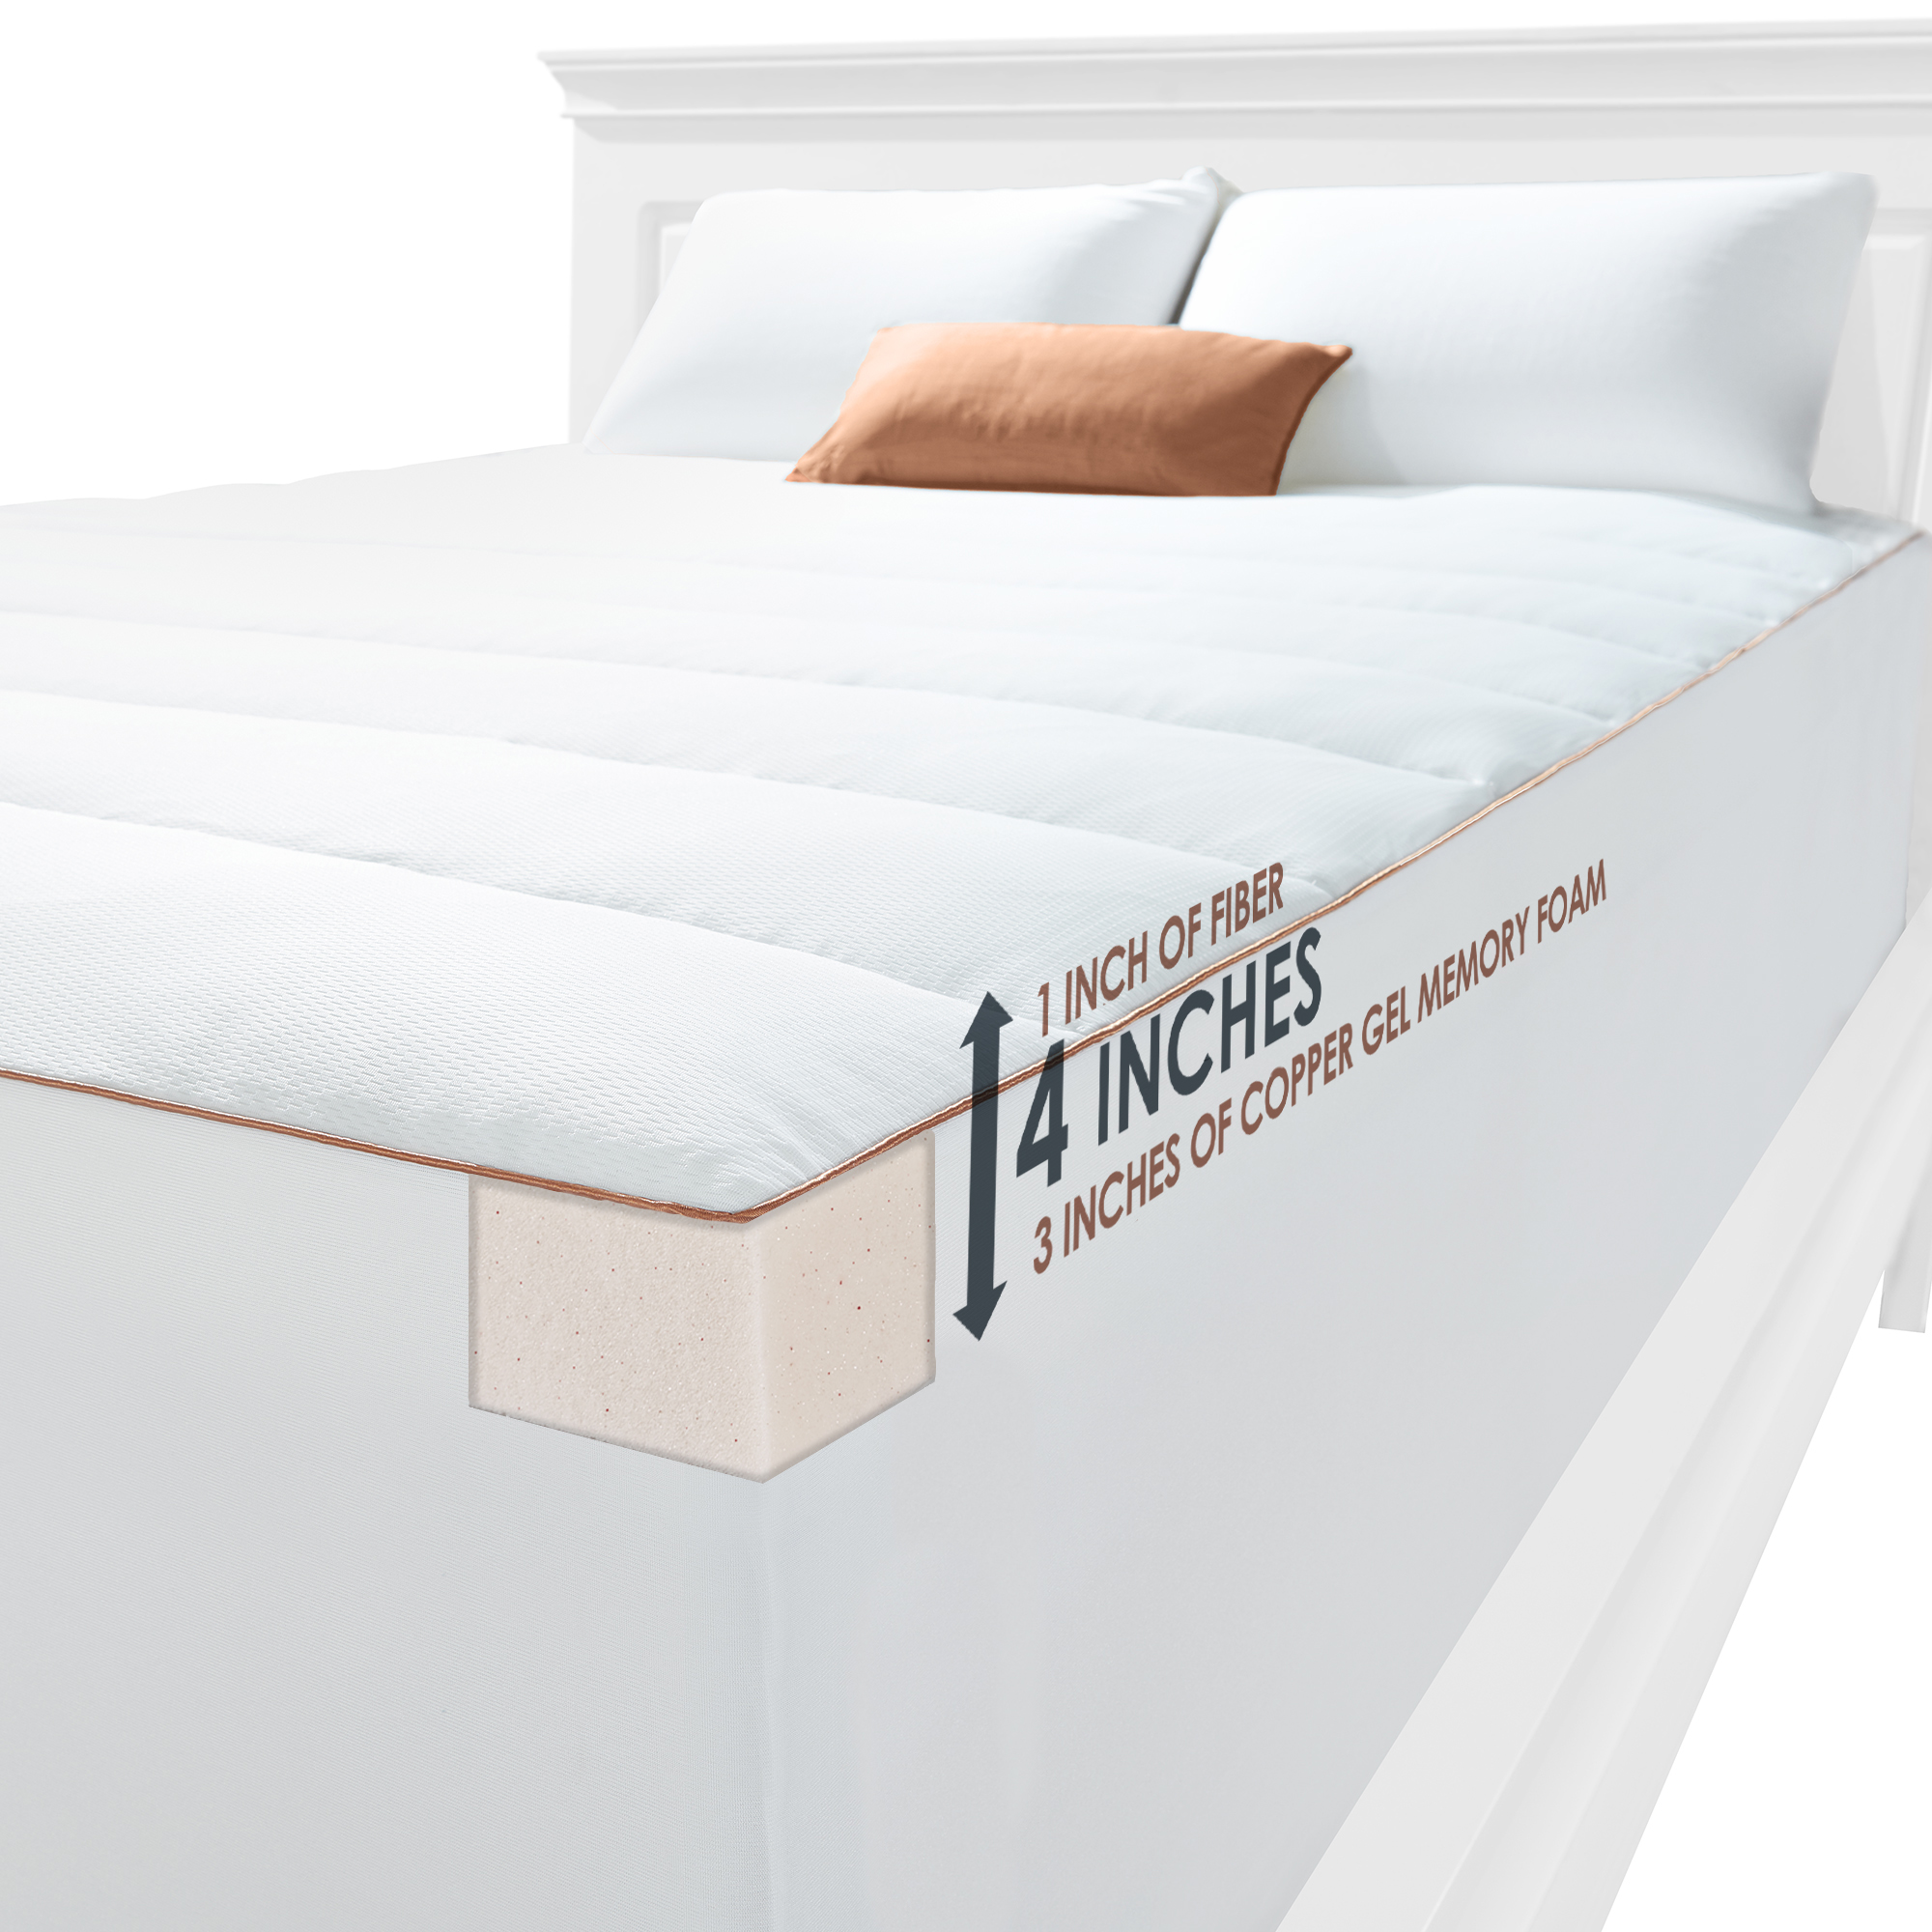 Dream Serenity 4 Inch Copper Gel Memory Foam Topper With Pillowtop